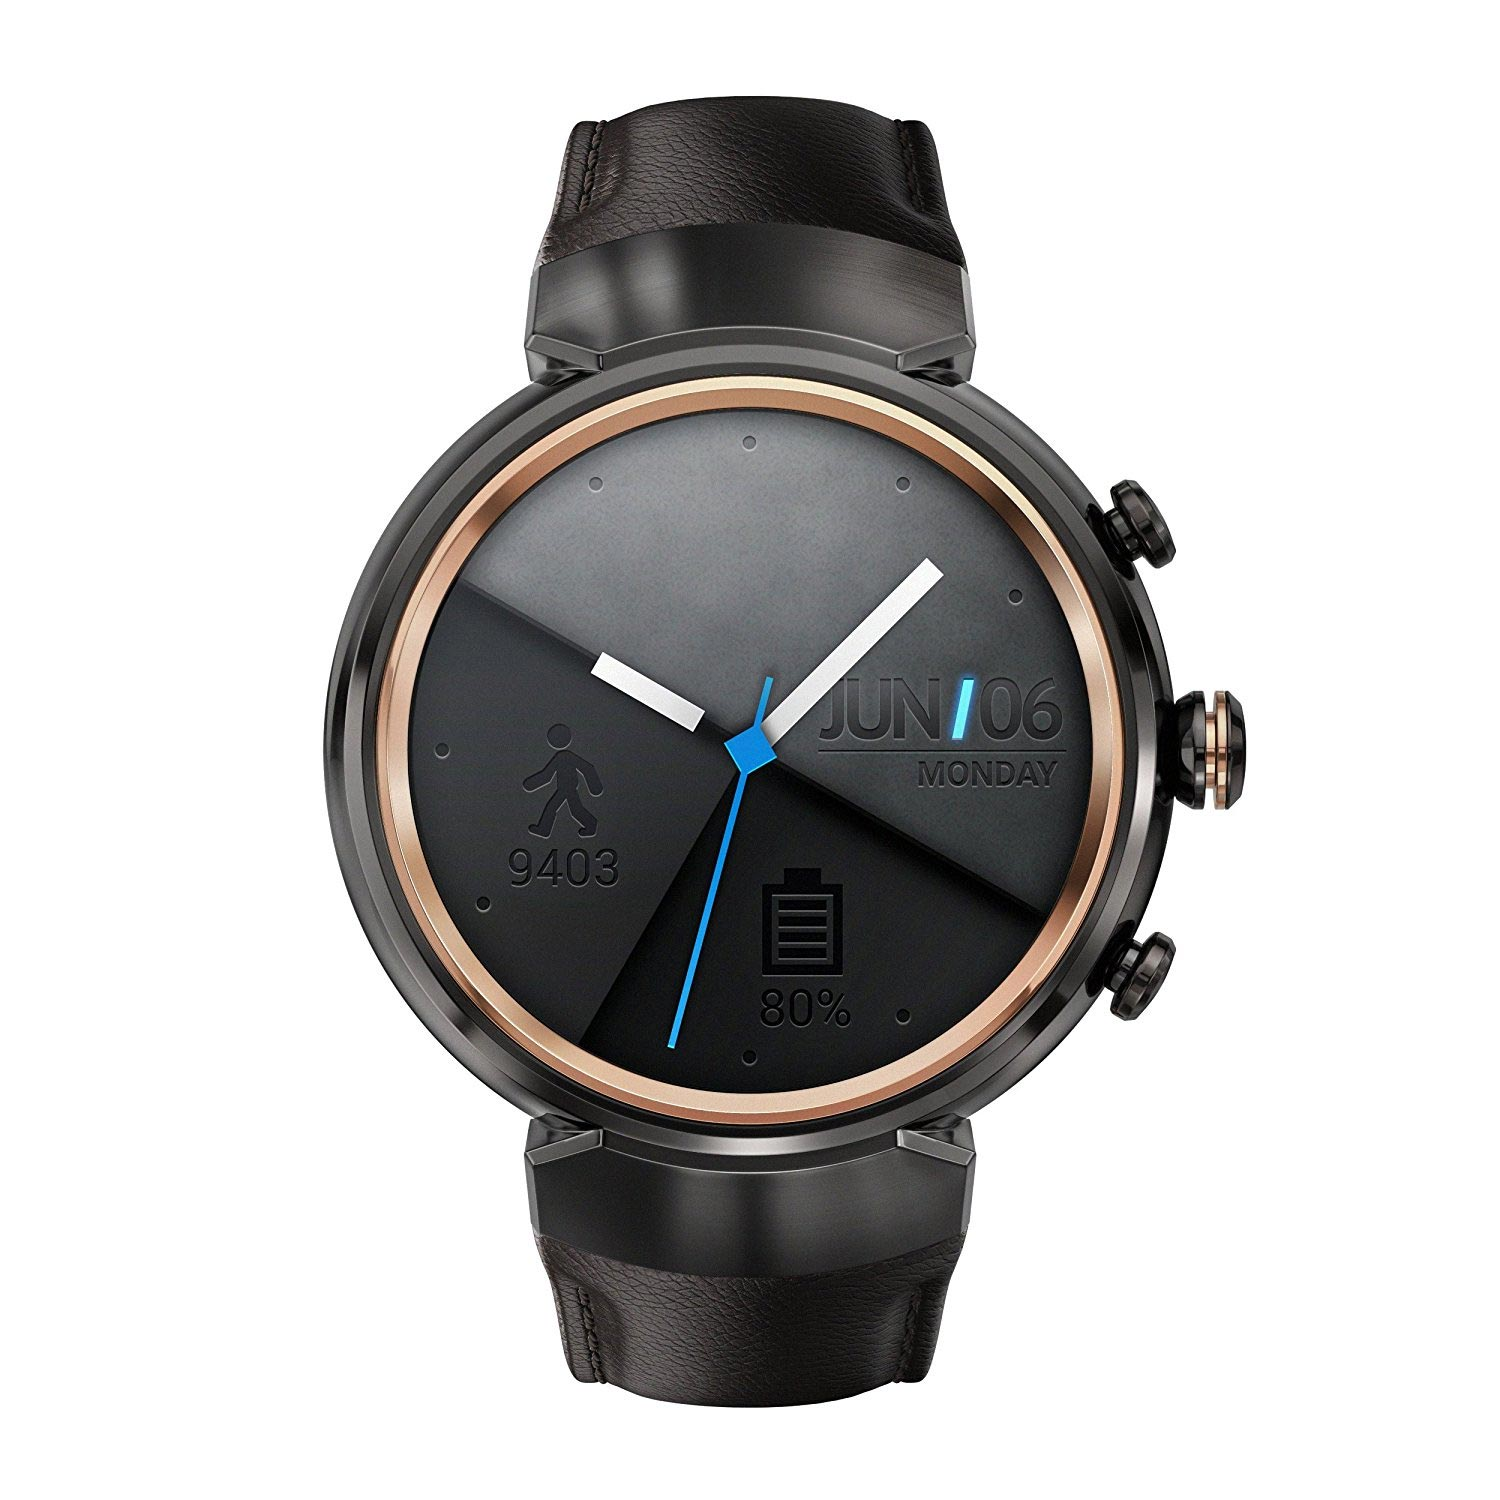 Asus-ZenWatch-3-Smartwatch-mit-AndoidWear-und-Multi-Touch-AMOLED-Display-1